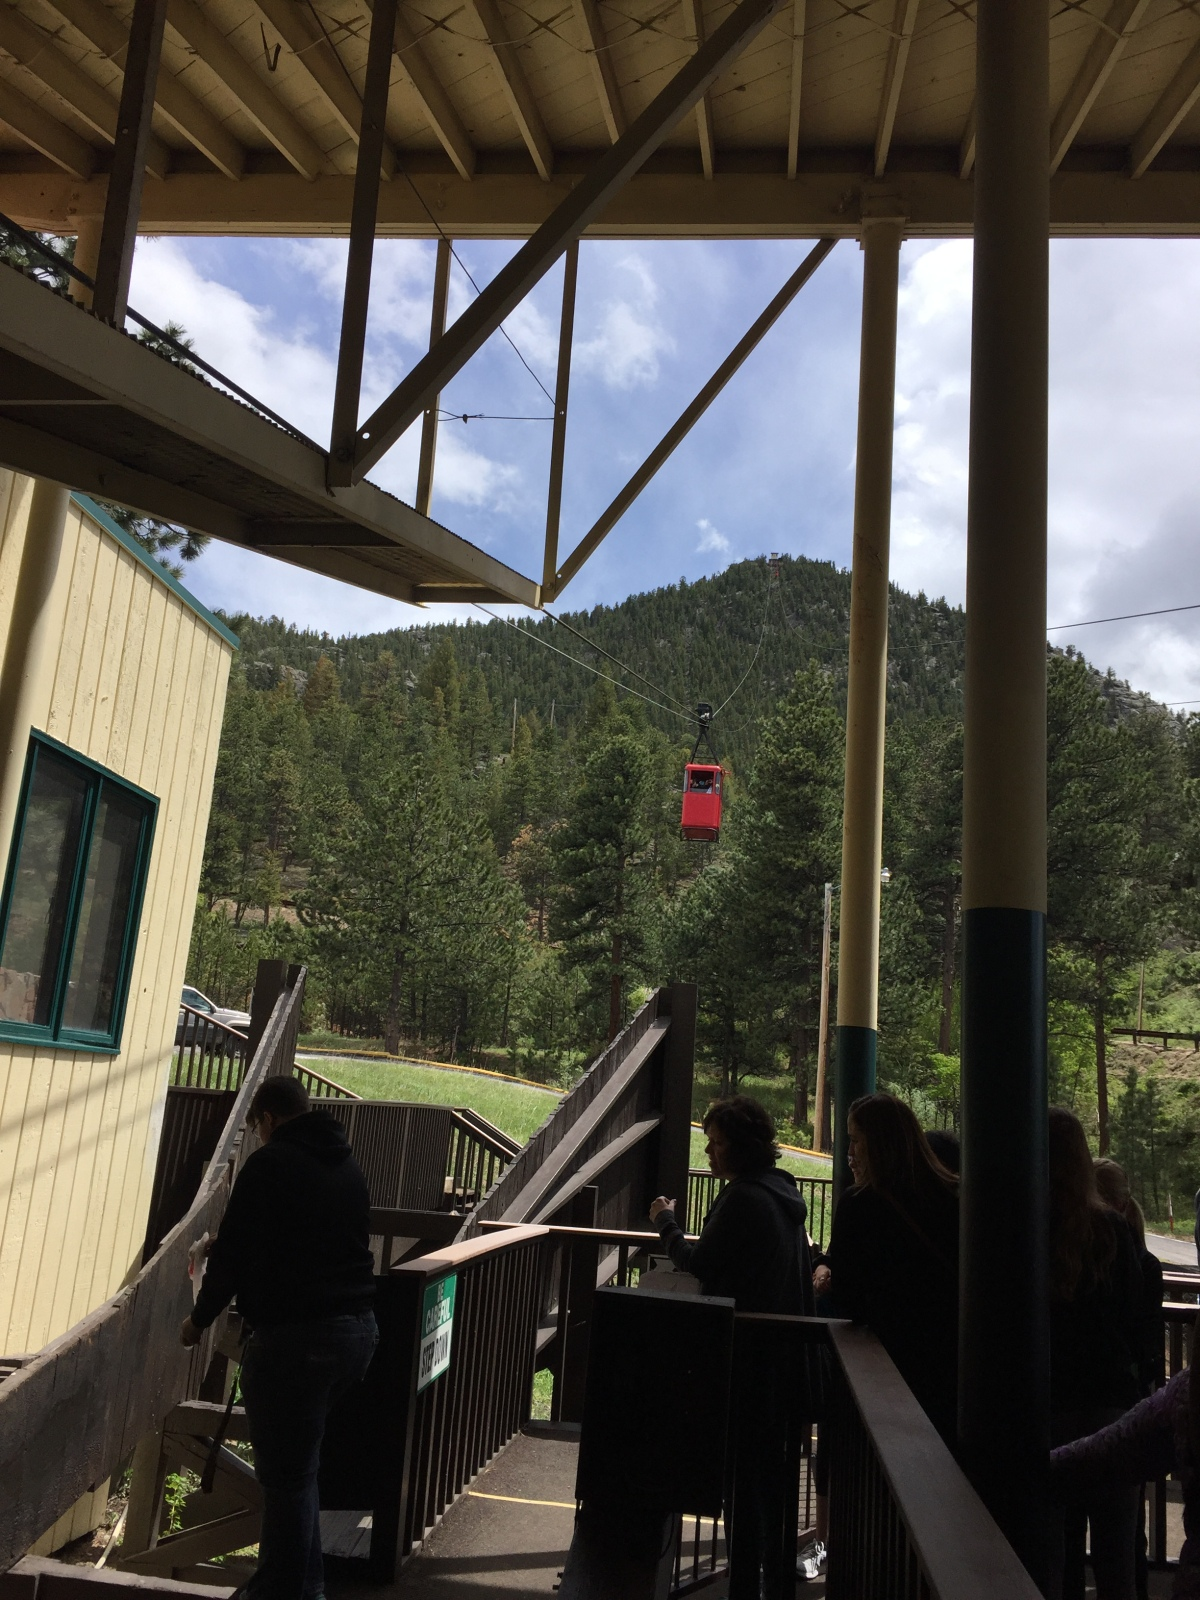 Our Adventure on The Estes Park Aerial Tramway